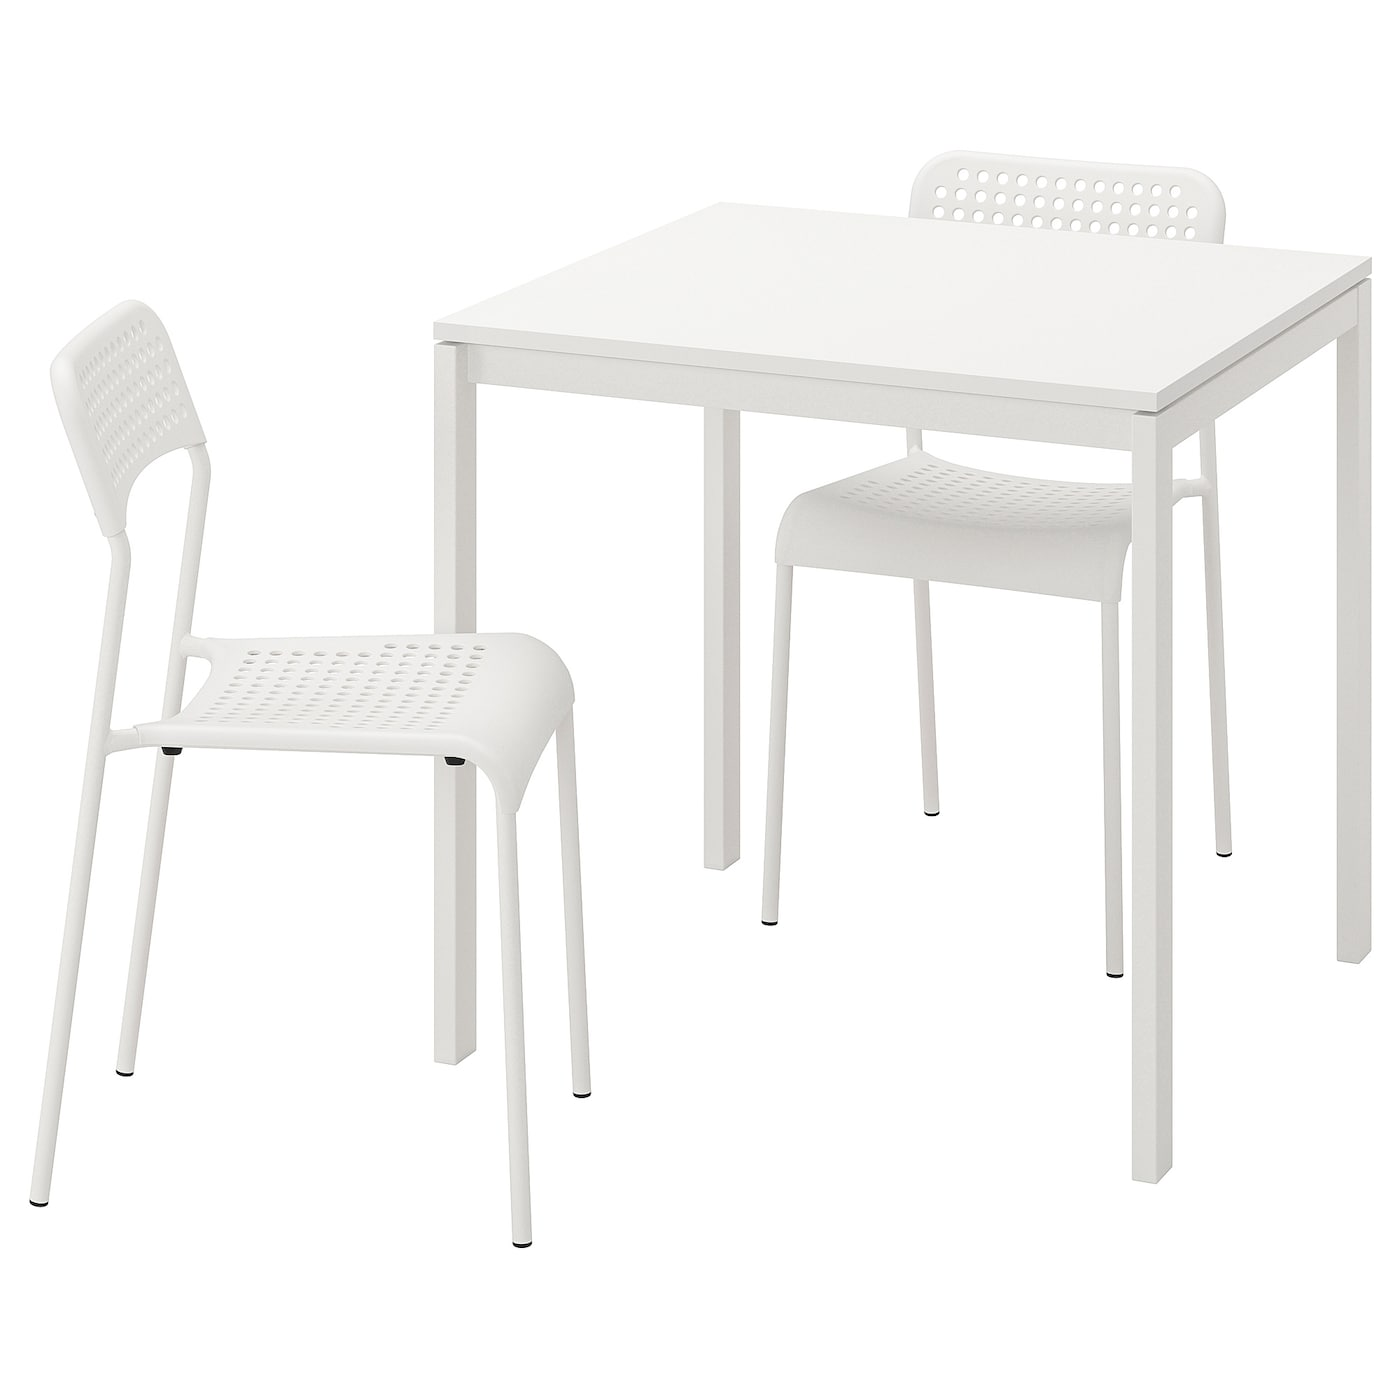 Chaises De Cuisine Ikea: MELLTORP / ADDE Table And 2 Chairs